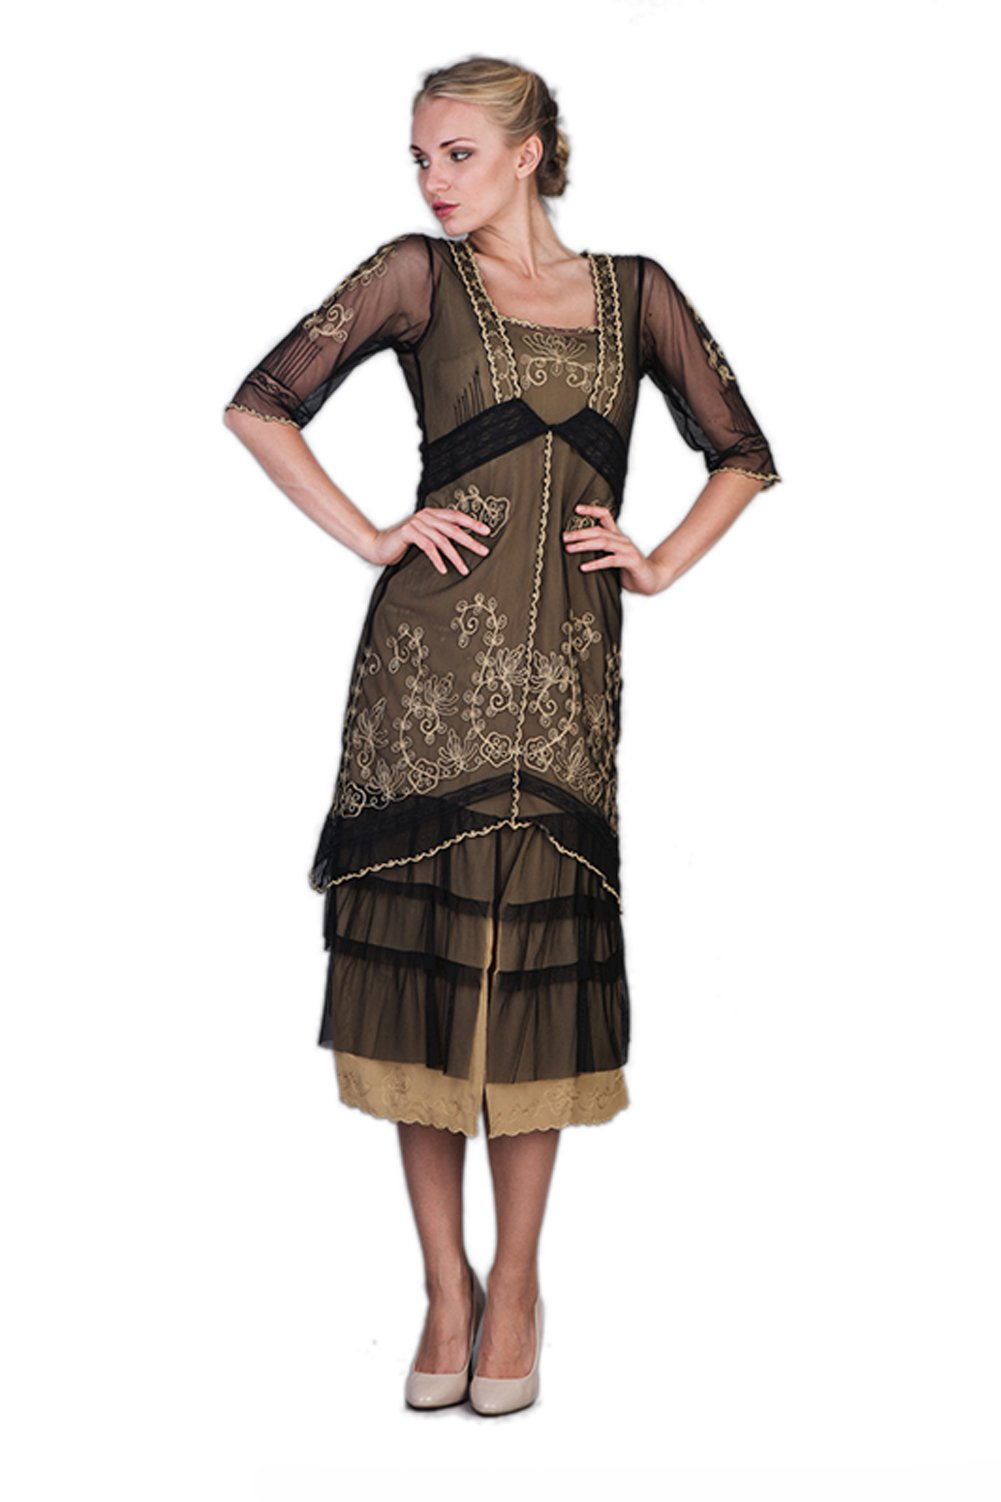 Nataya 2101 Women's Titanic Vintage Style Dress in Black/Gold (X-Large)